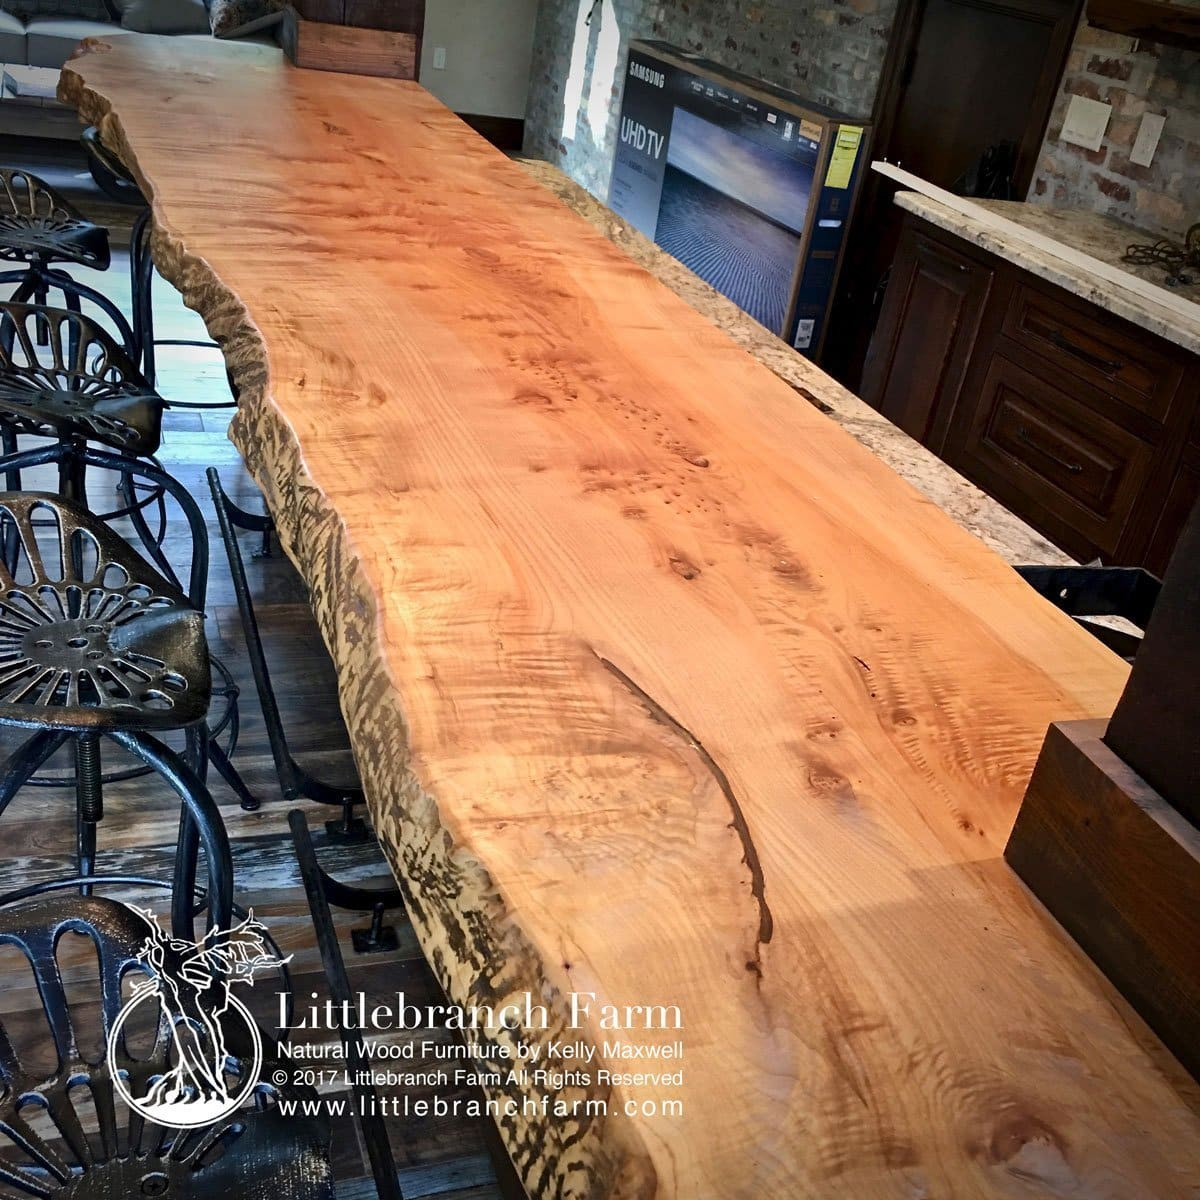 top island butcher countertop j slab grain of countertops repurposed citrus cool garage counter face on tung block full a affordable our walnut inch size wood finishing table finish natural ideas img oil custom shown sanded rough topa tops kitchen